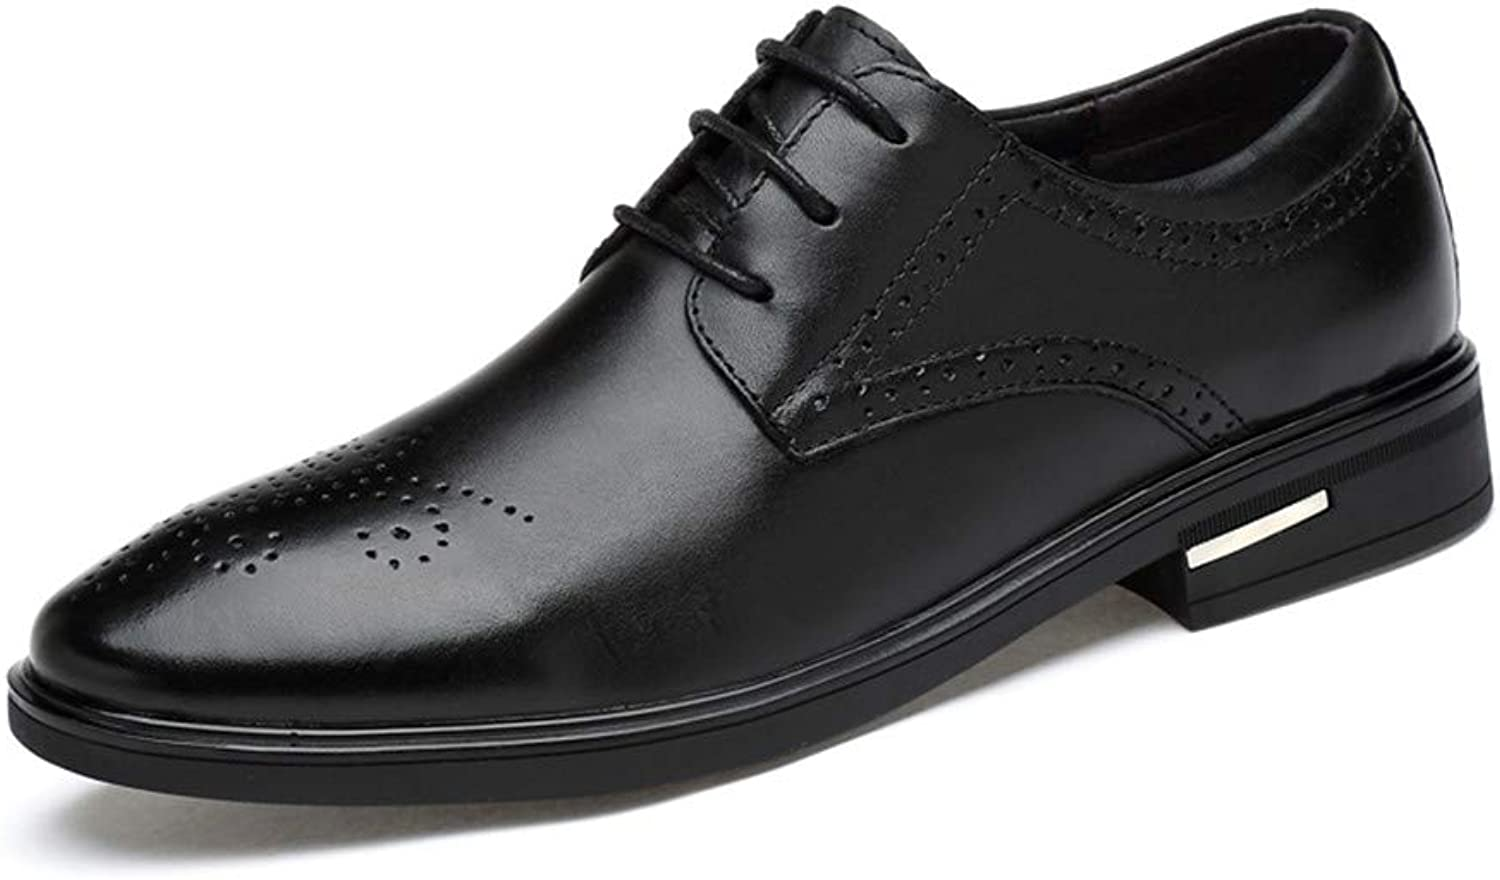 Z.L.F shoes Modern Men's Business Oxford Casual Simple Classic Pointed Formal shoes Leather shoes